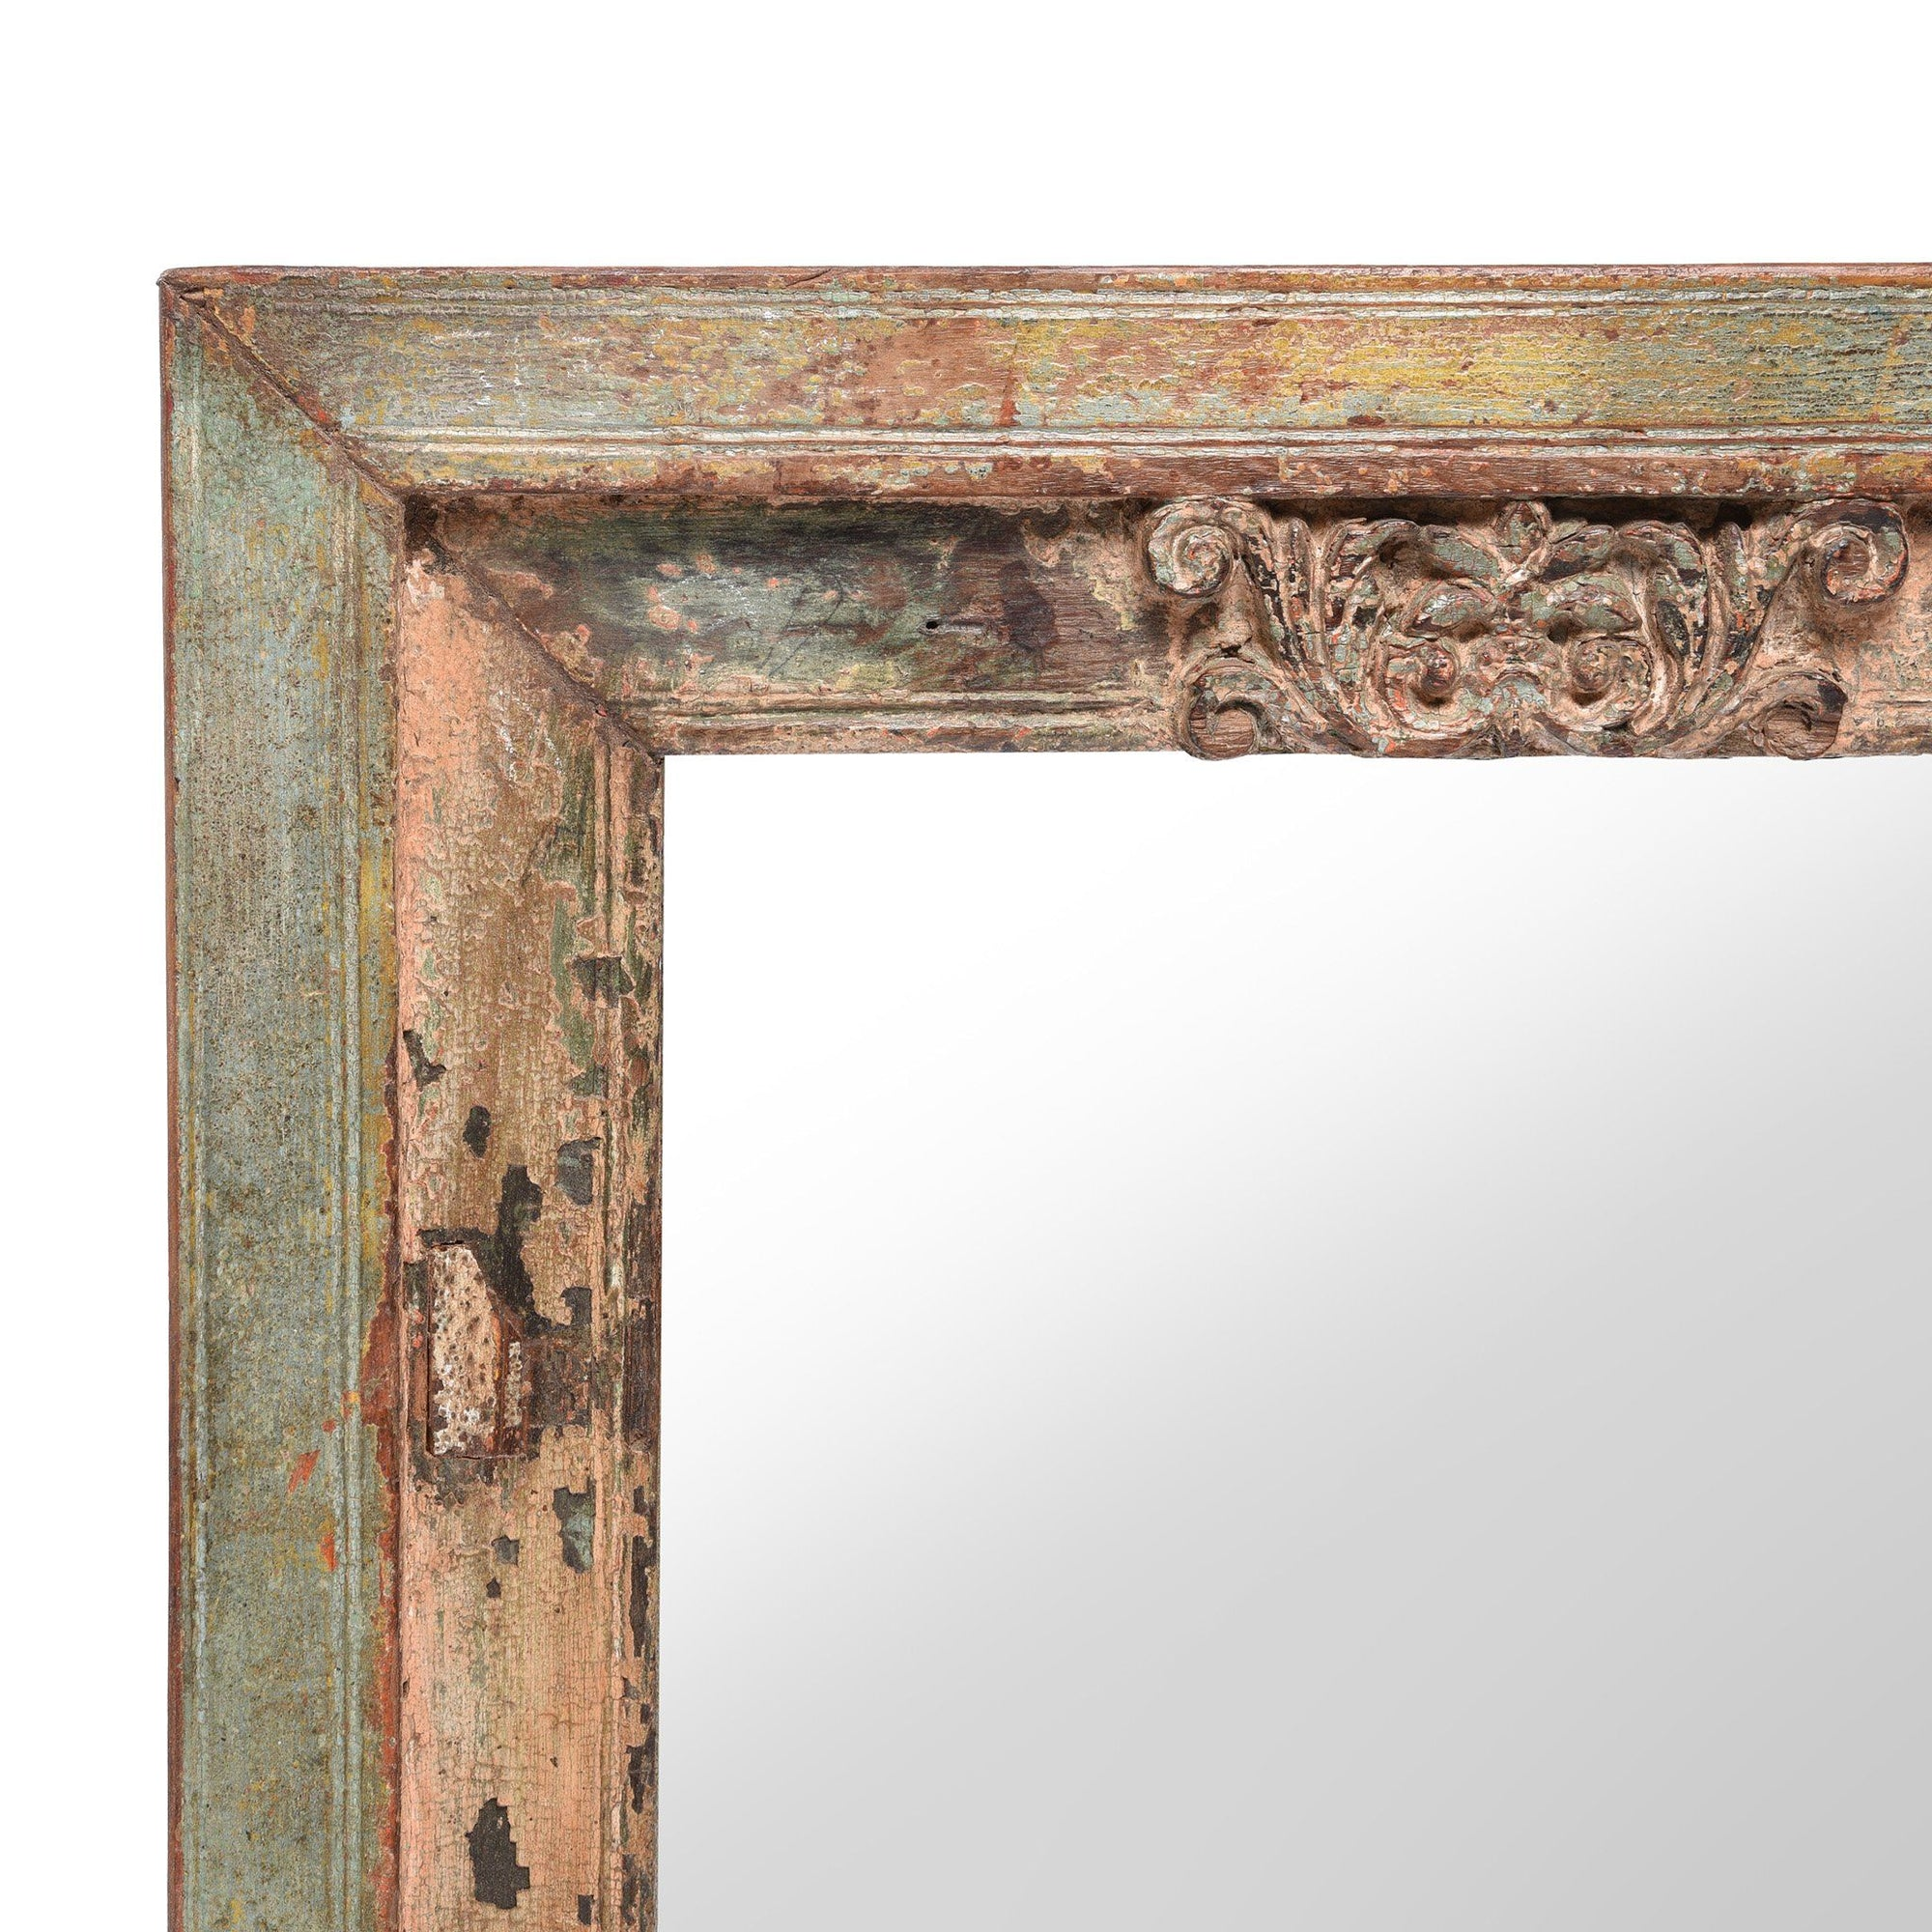 Mirror Made From An Old Teak Window - 18thC | Indigo Antiques